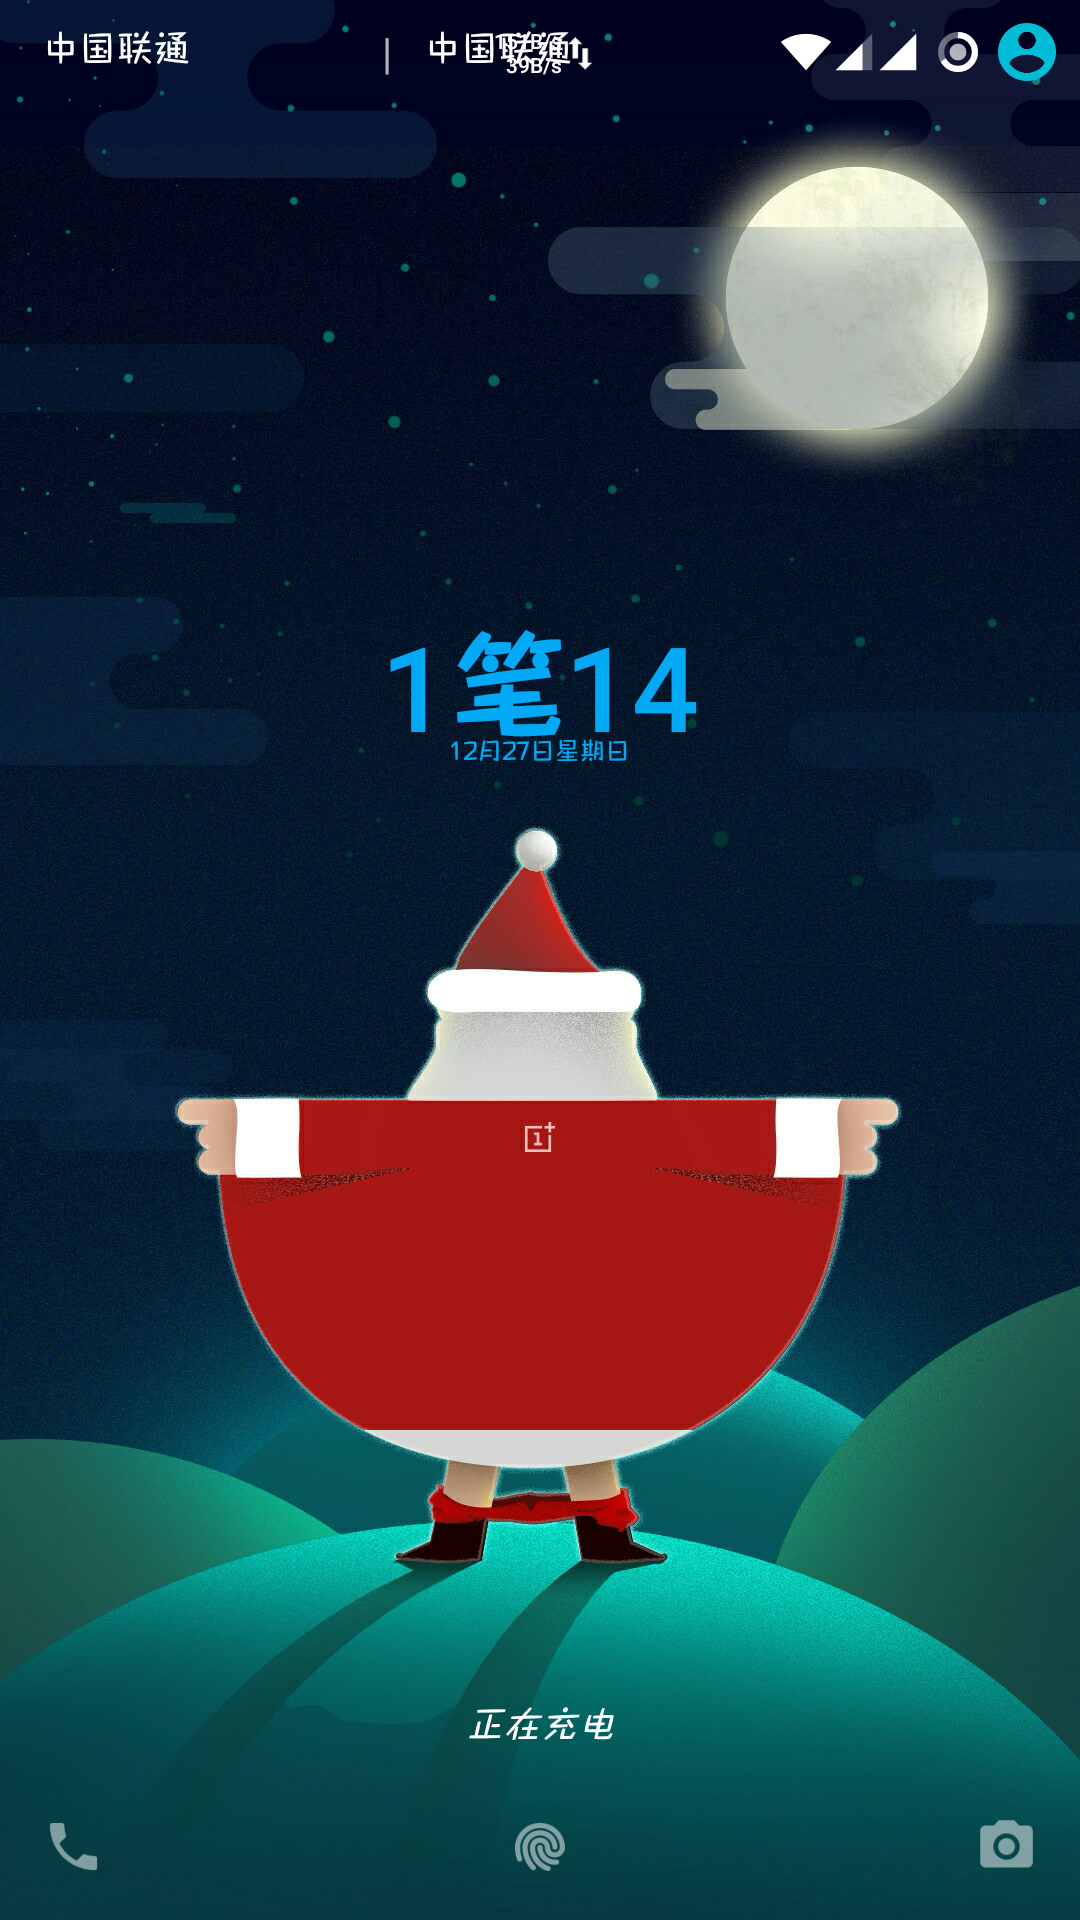 Screenshot_2015-12-27-13-14-23.png